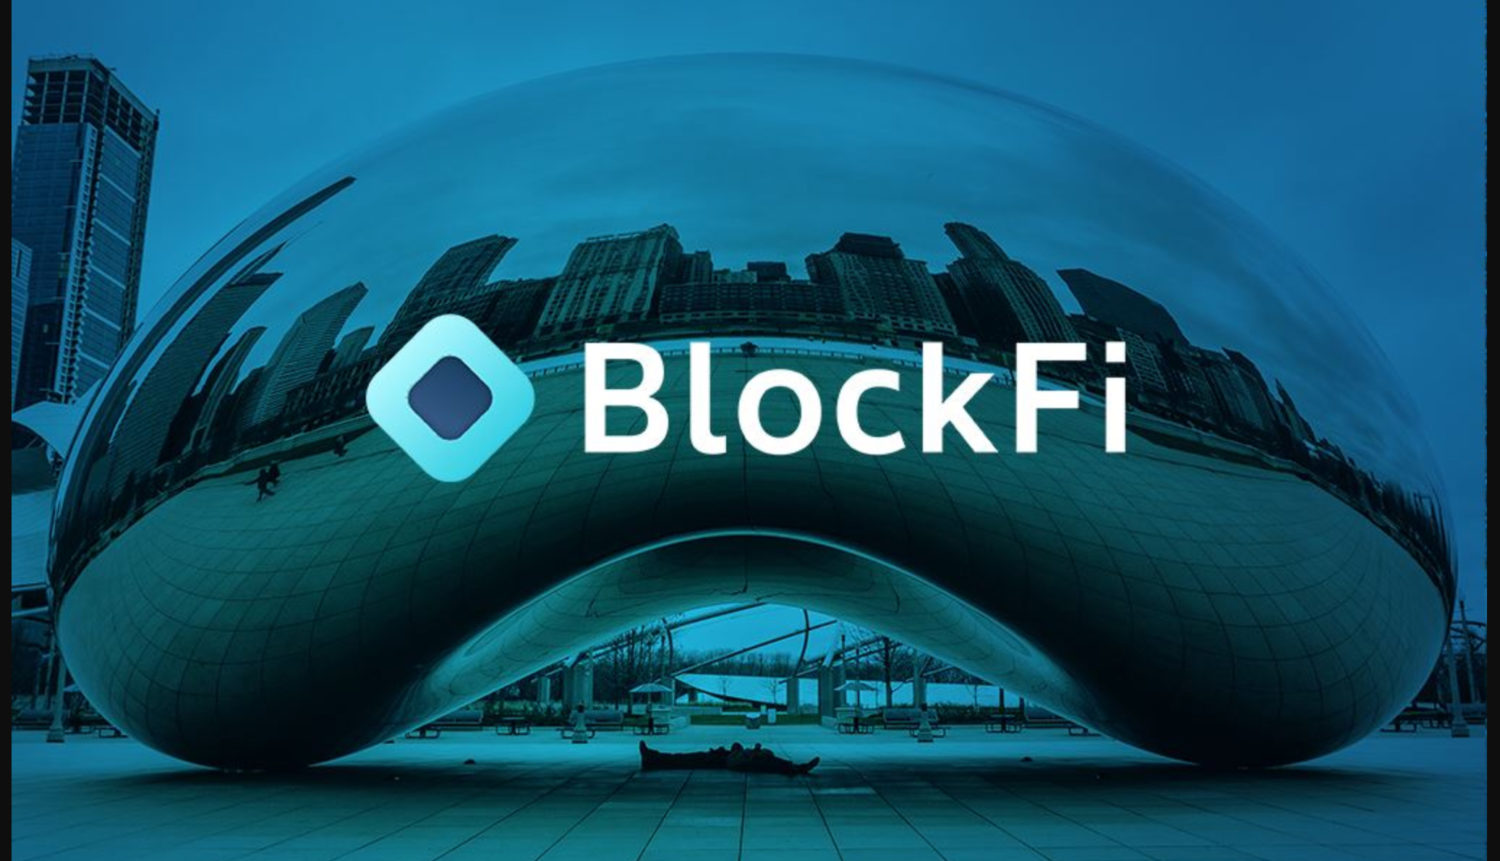 BlockFi in Discussions to Raise Several Hundred Million in Latest Round: Report